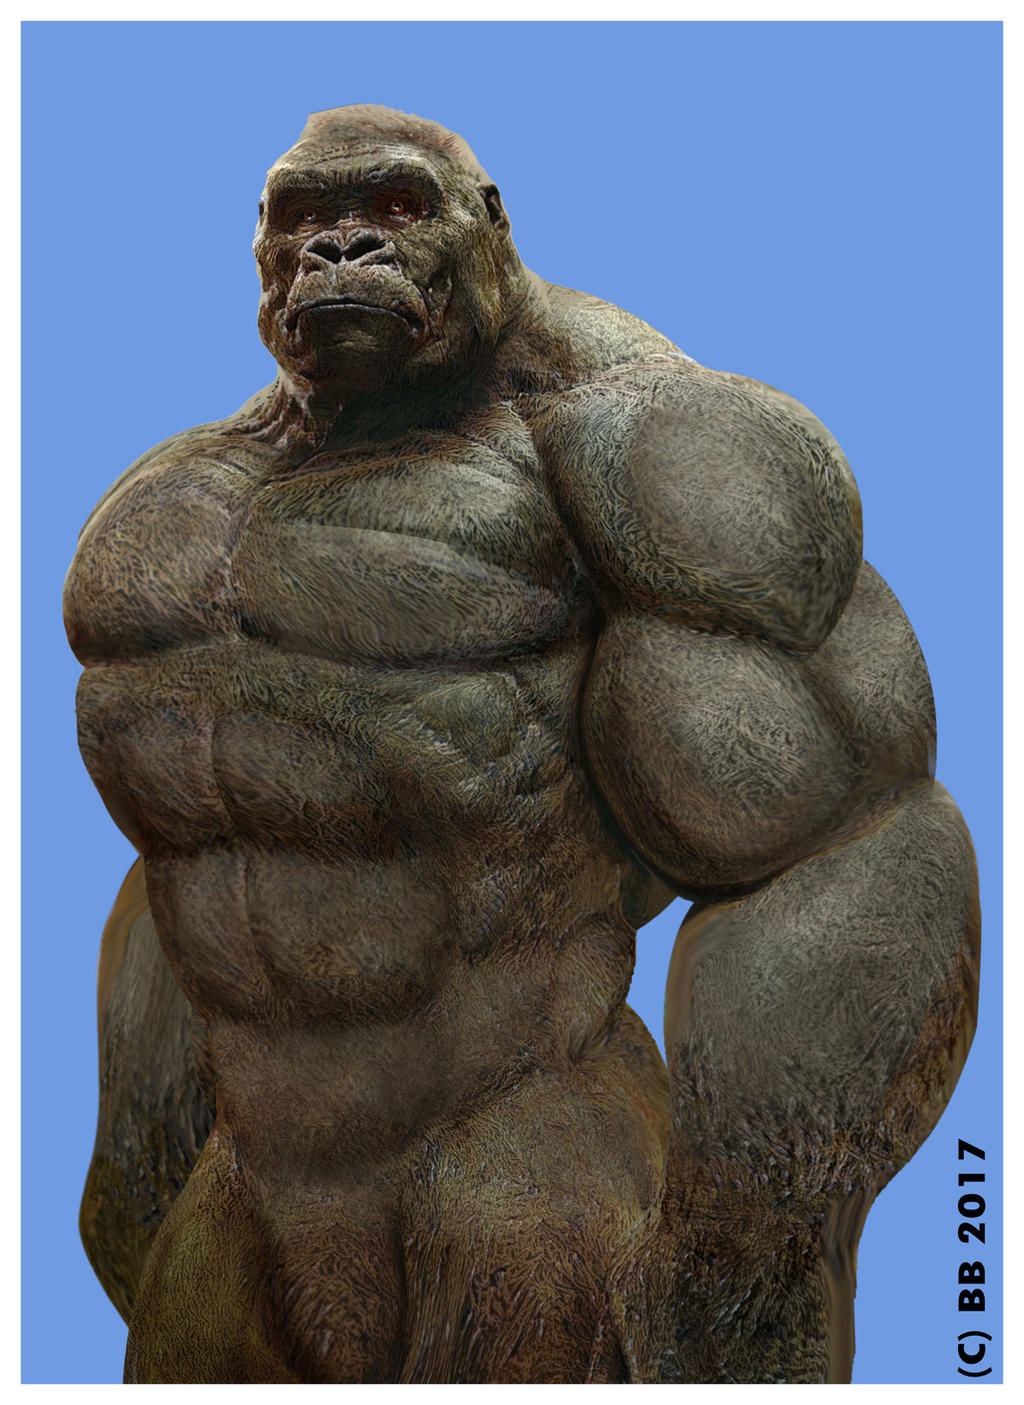 Ultimate gorilla by Blathering on DeviantArt